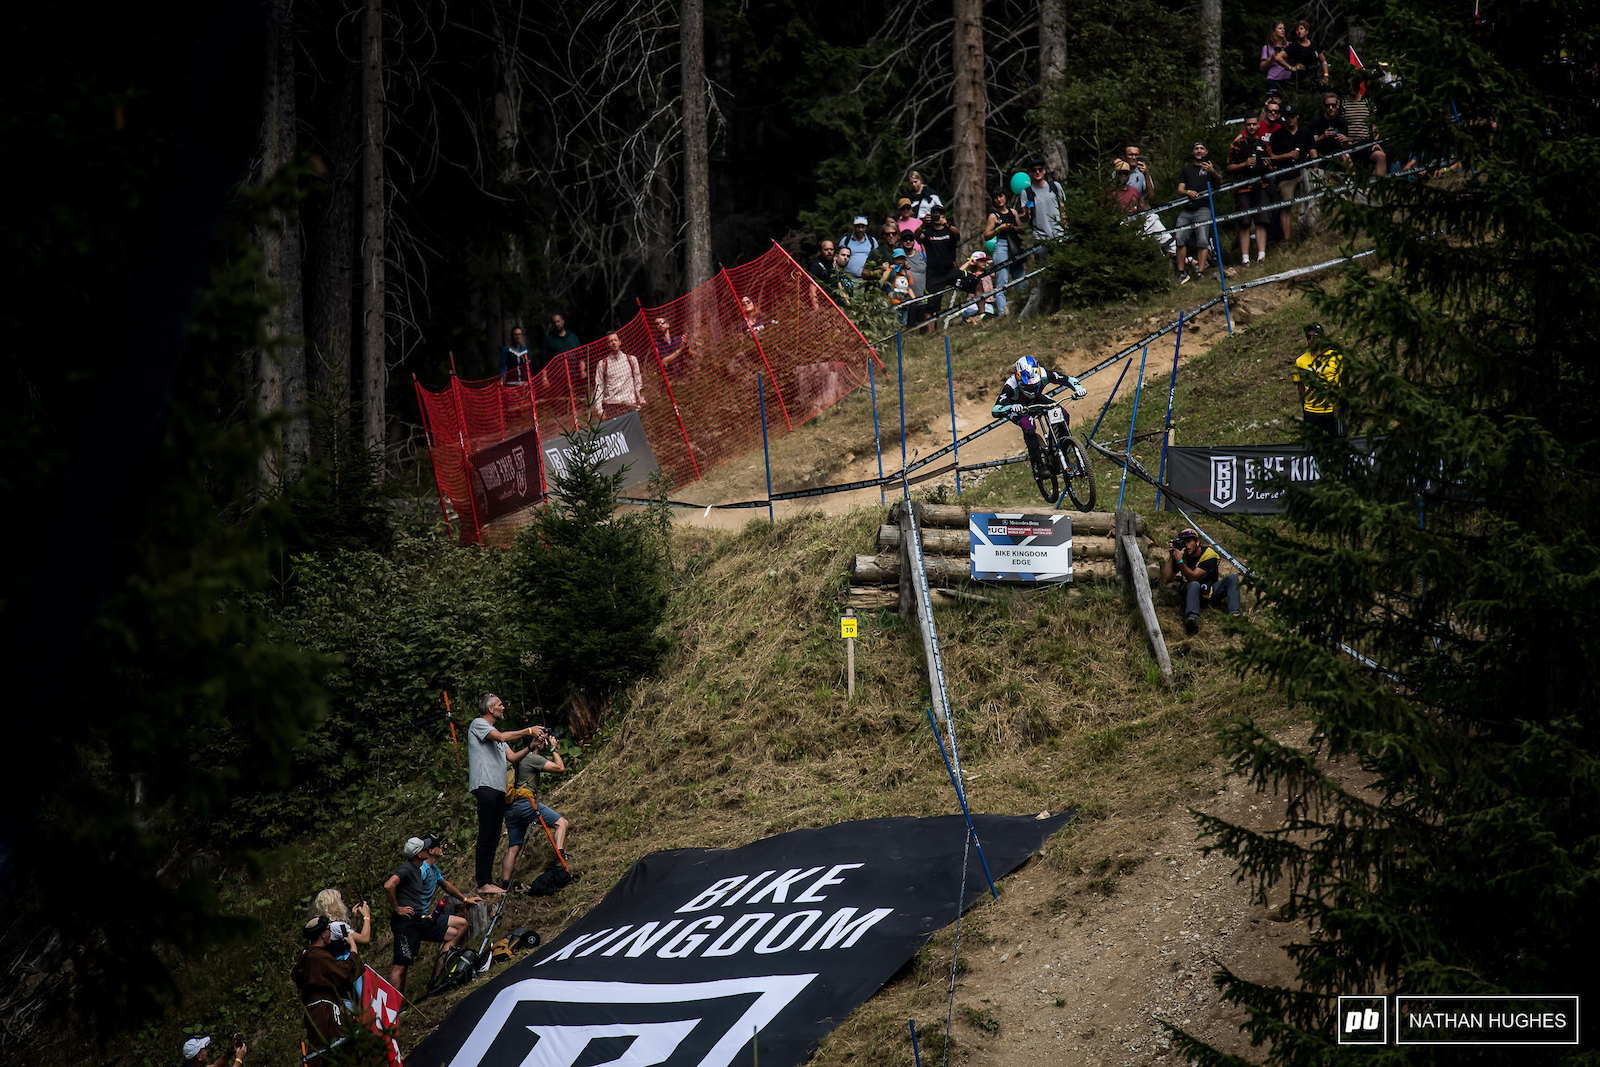 Loic Bruni bouncing back from his leg injury so fast with one heck of a run.